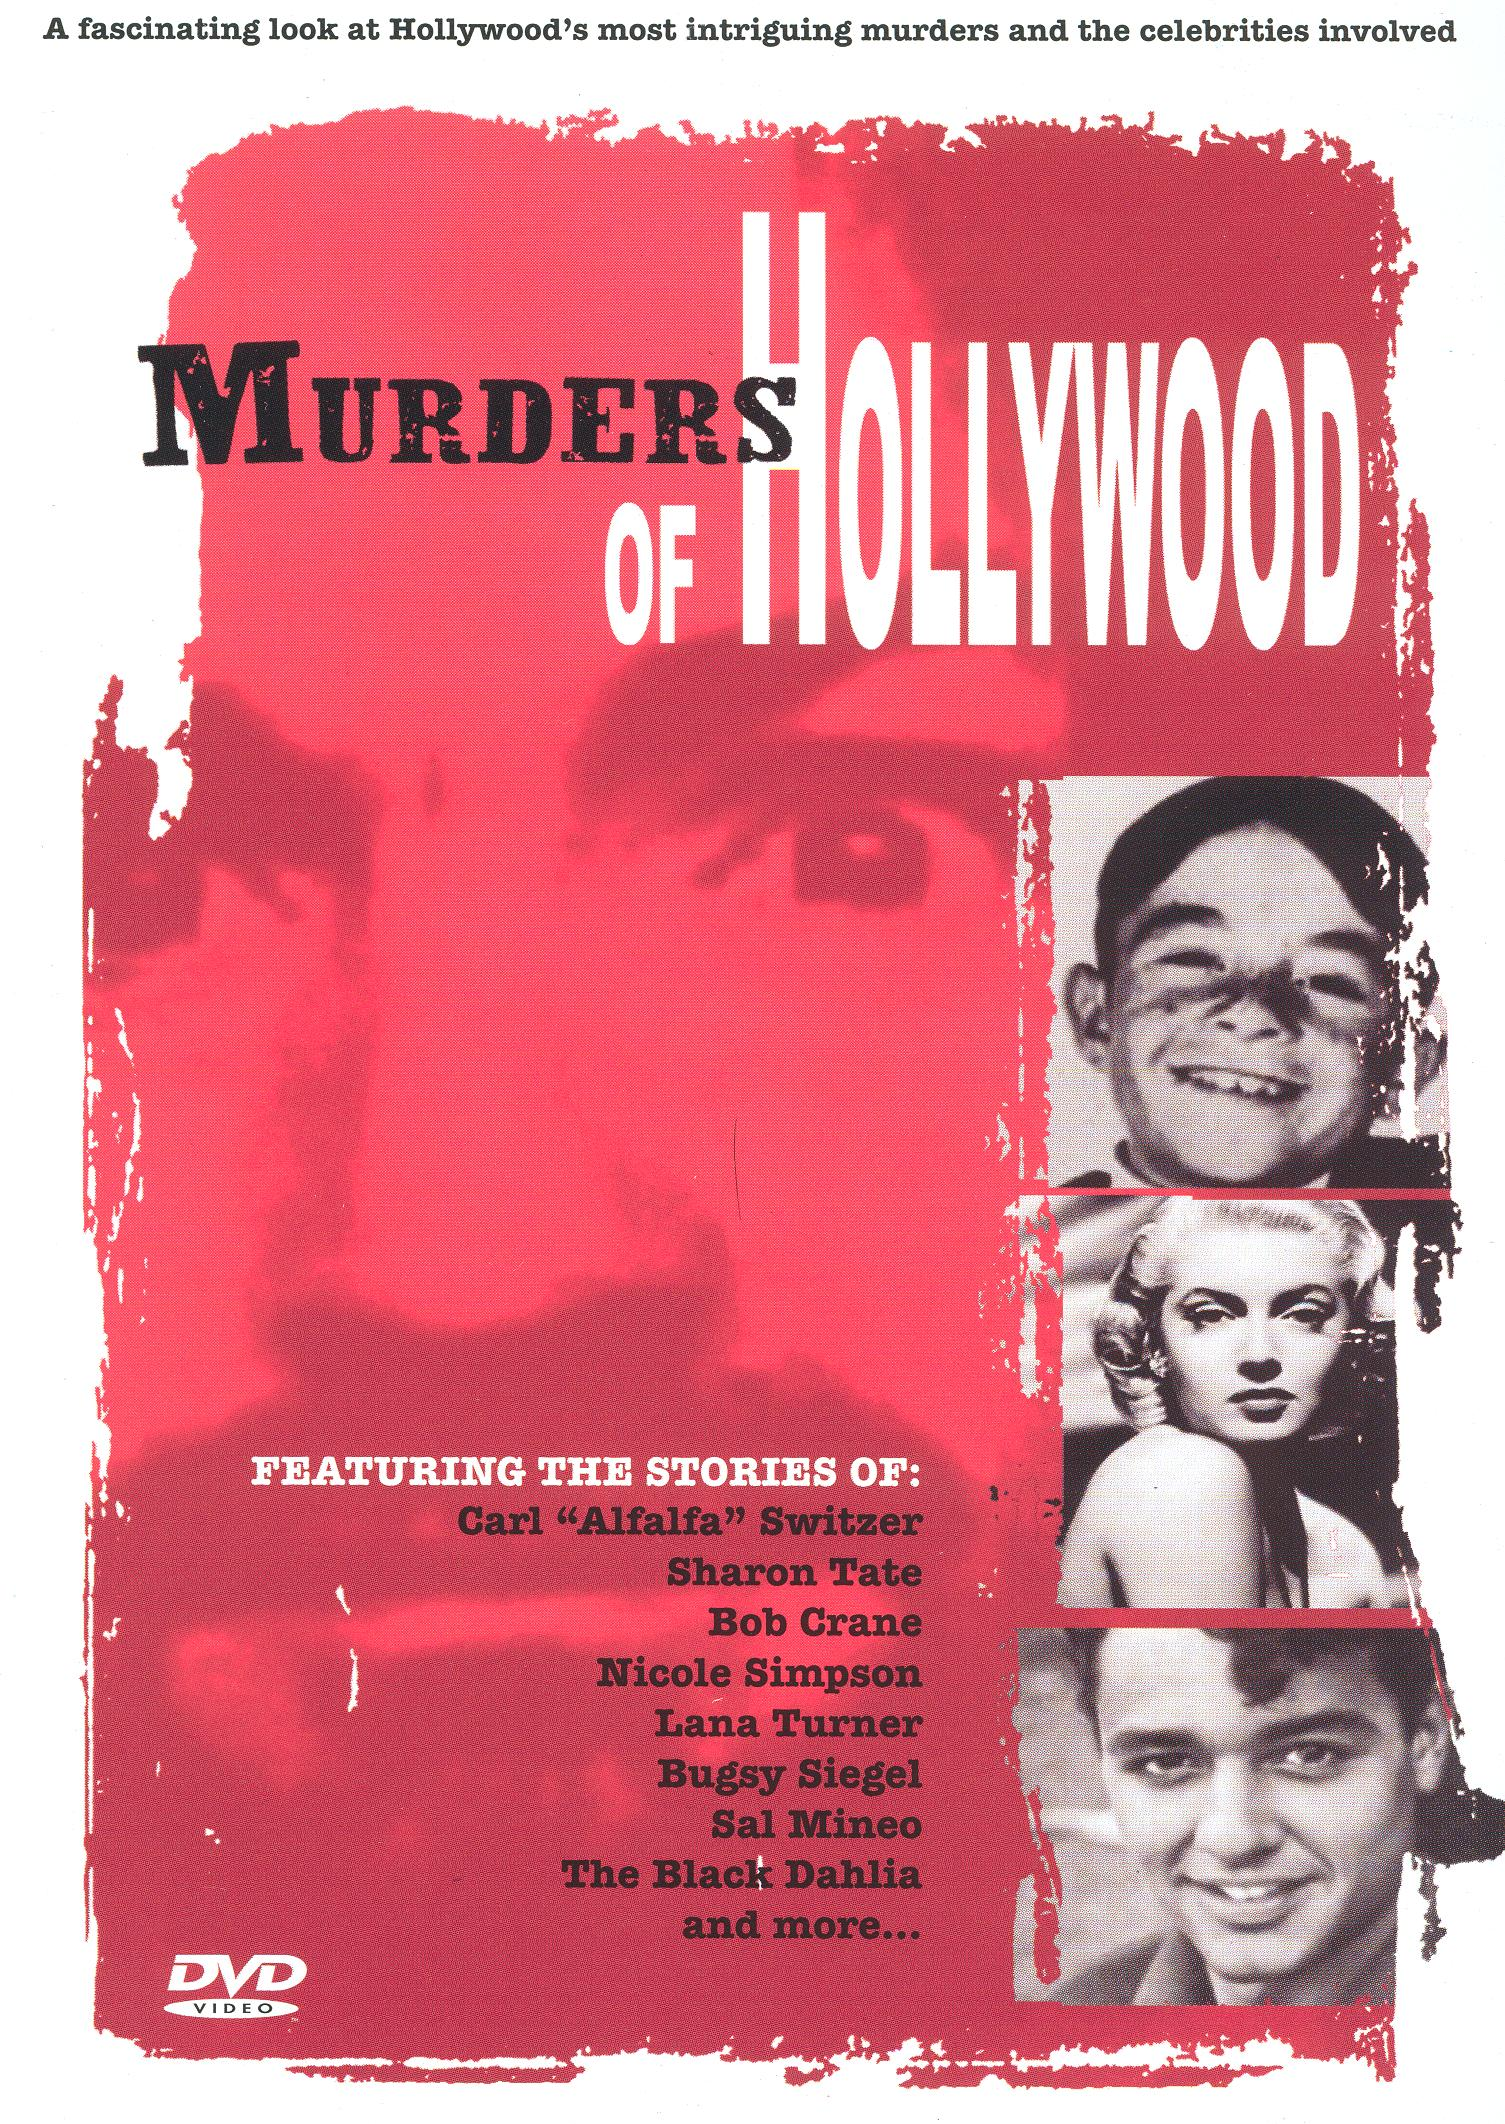 The Murders of Hollywood